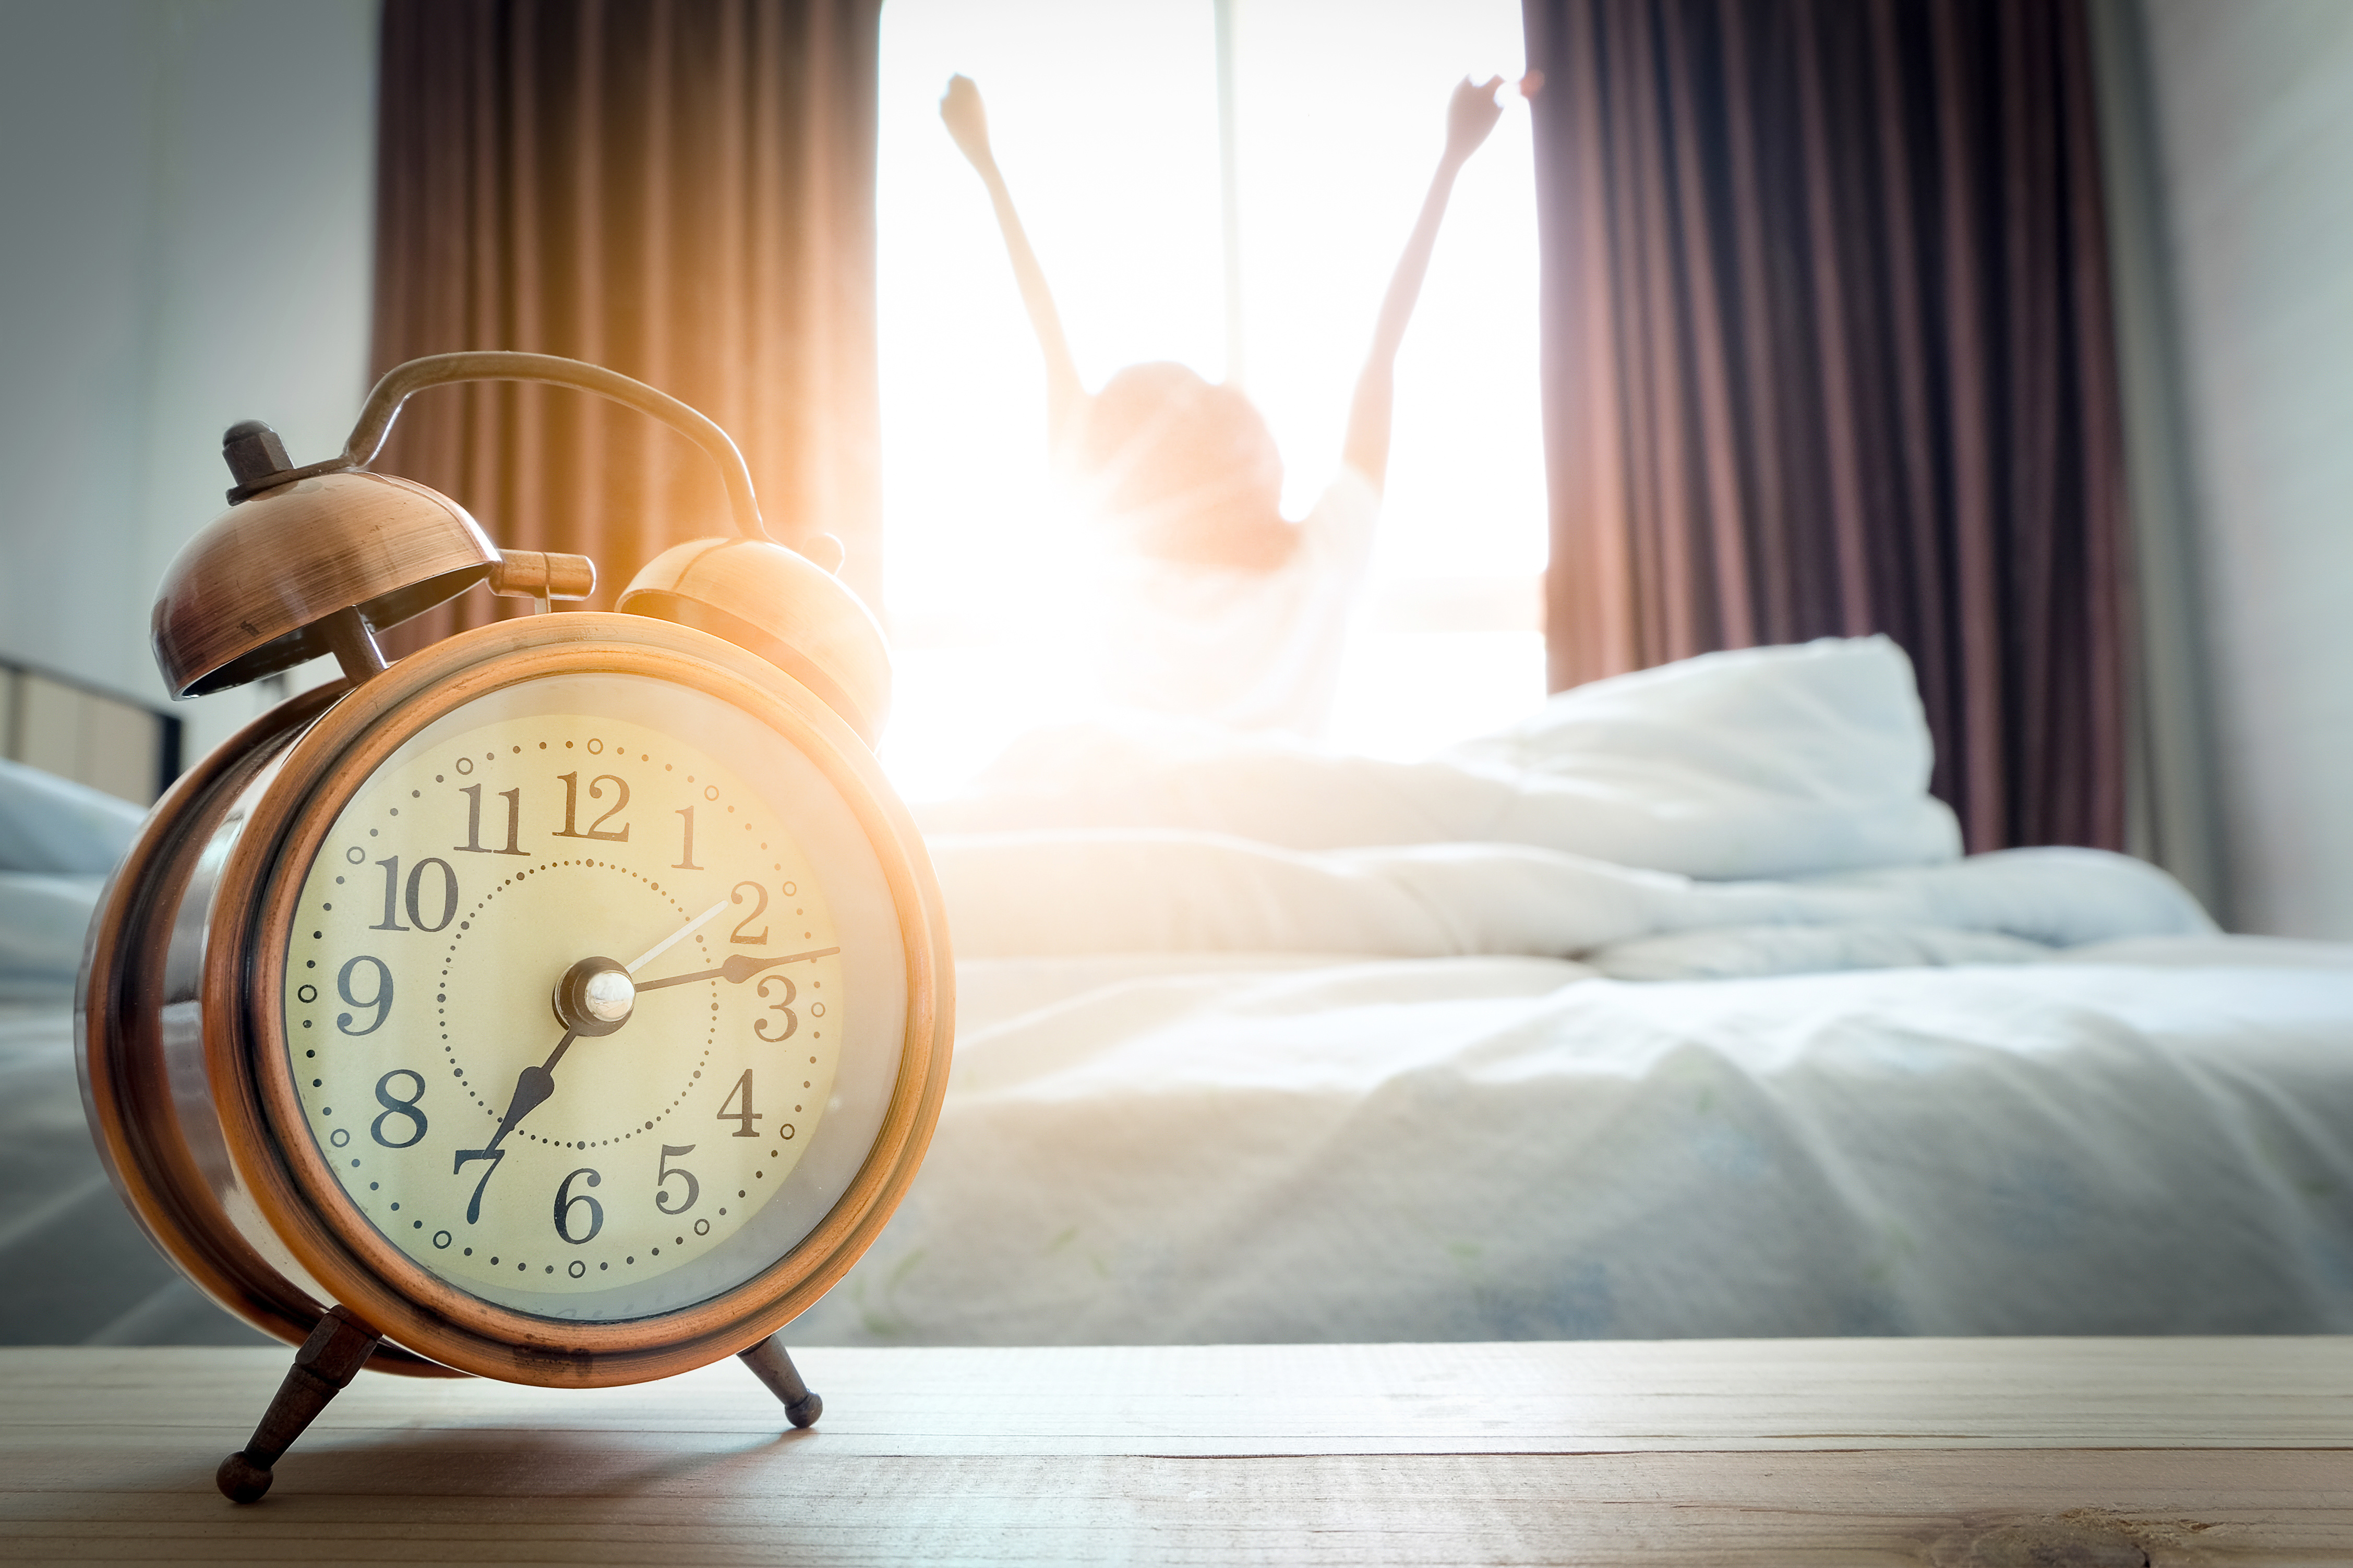 7 Steps to a Morning Routine That Will Help Jumpstart Your Day